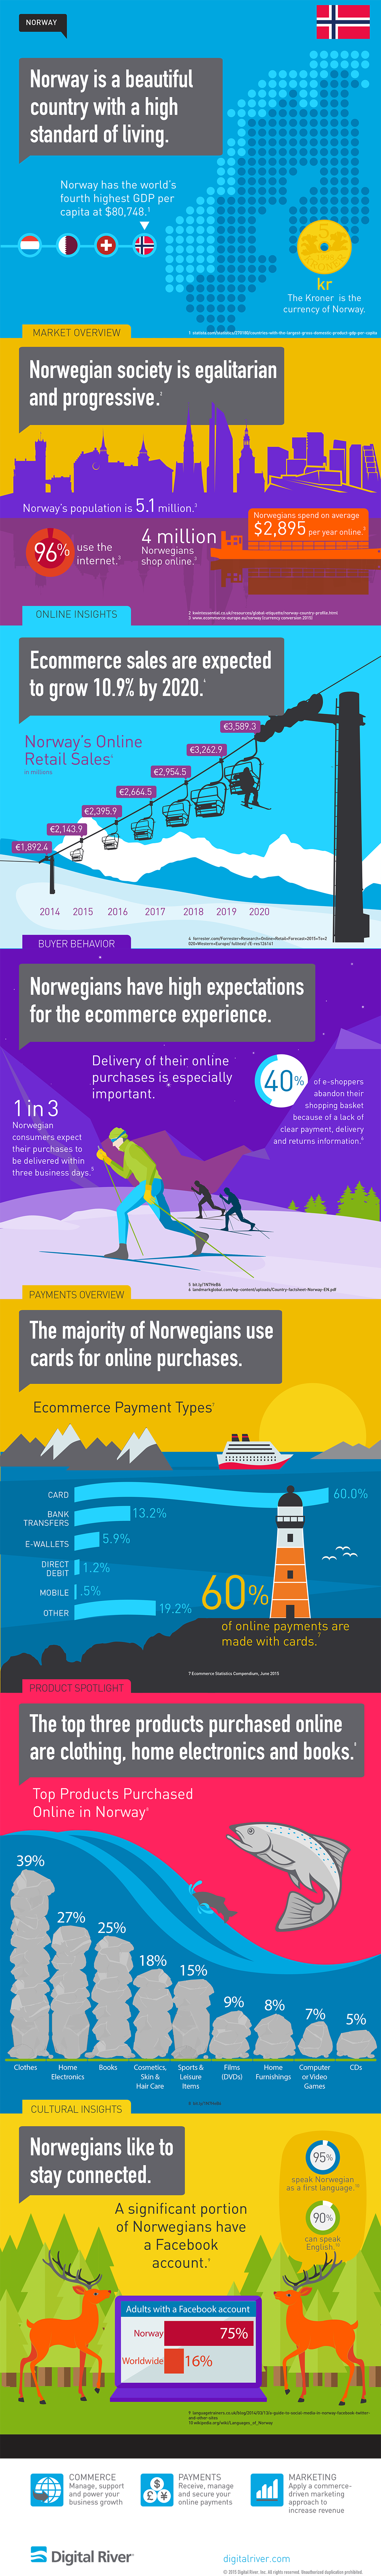 Norway_Infographic_Digital_River